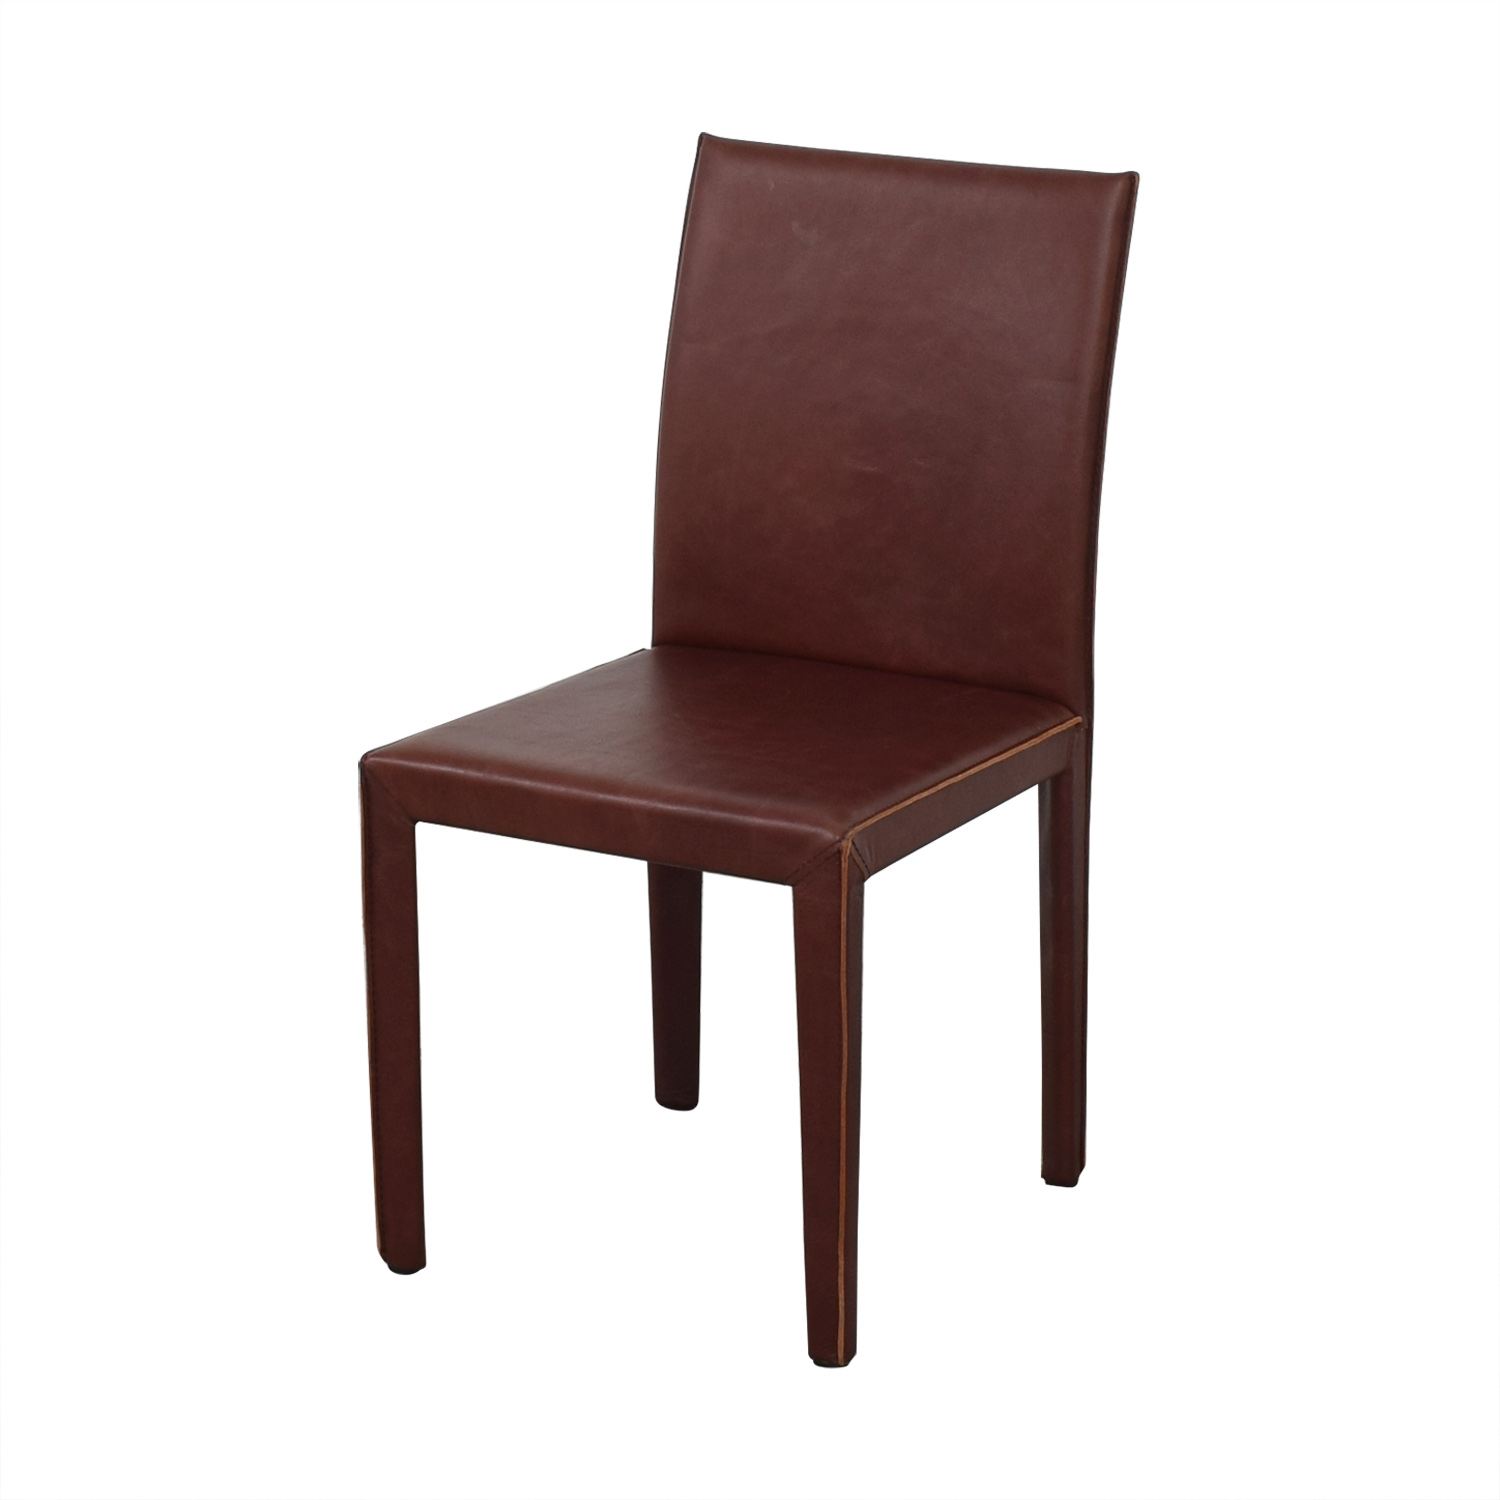 Crate & Barrel Folio Merlot Dining Chairs / Dining Chairs